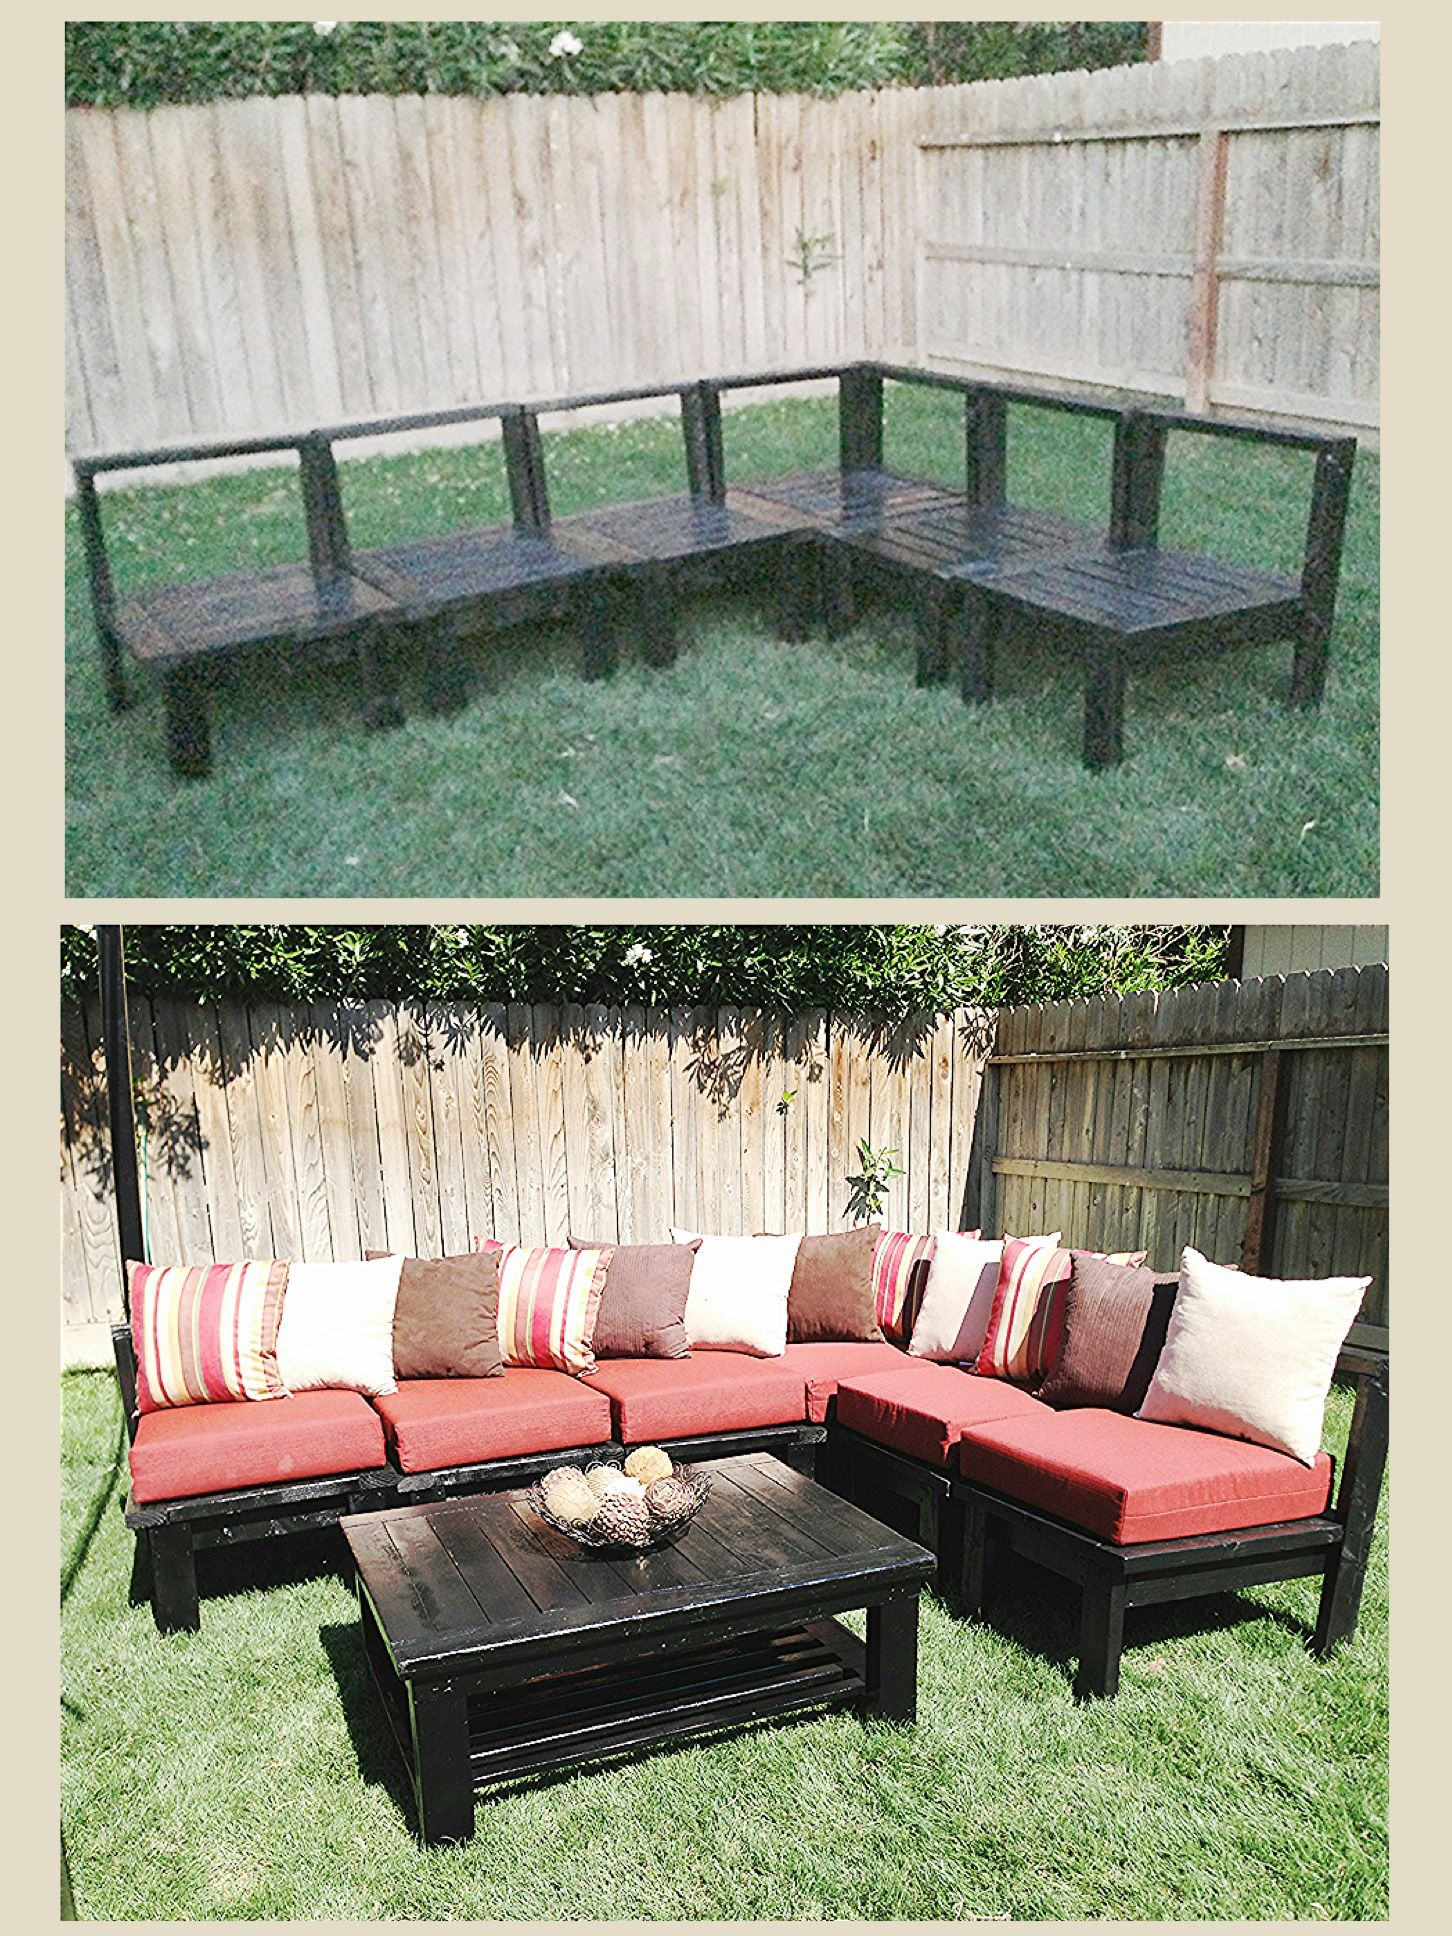 DIY Patio Furniture! My husband made this sectional sofa